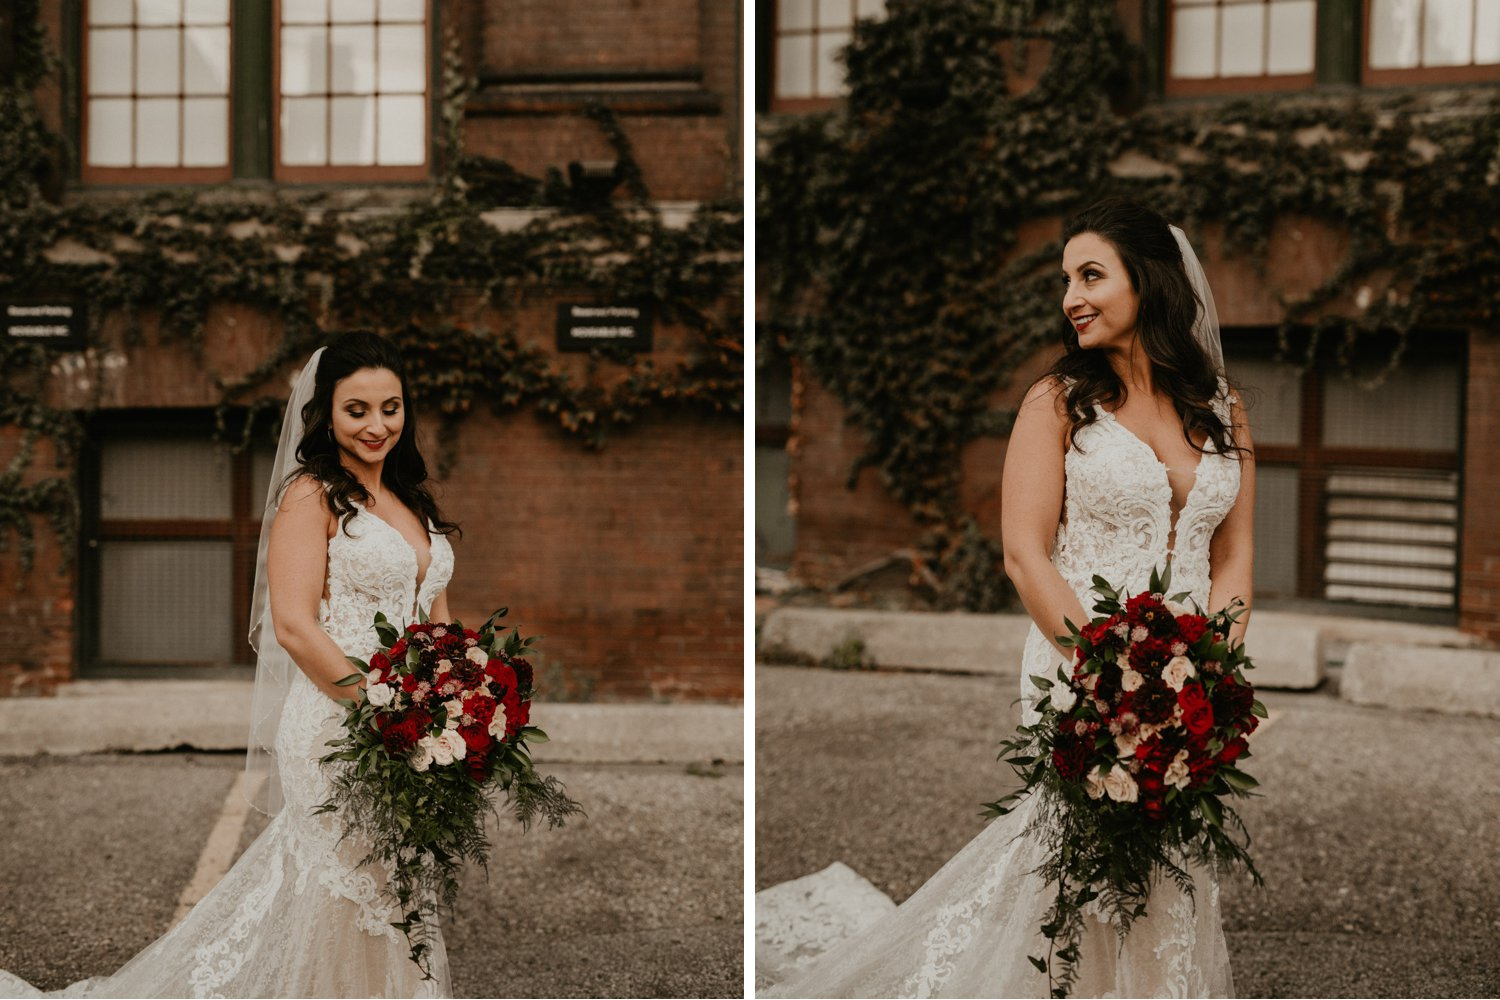 Liberty Village Wedding - portrait of the bride in front of brick build with vines